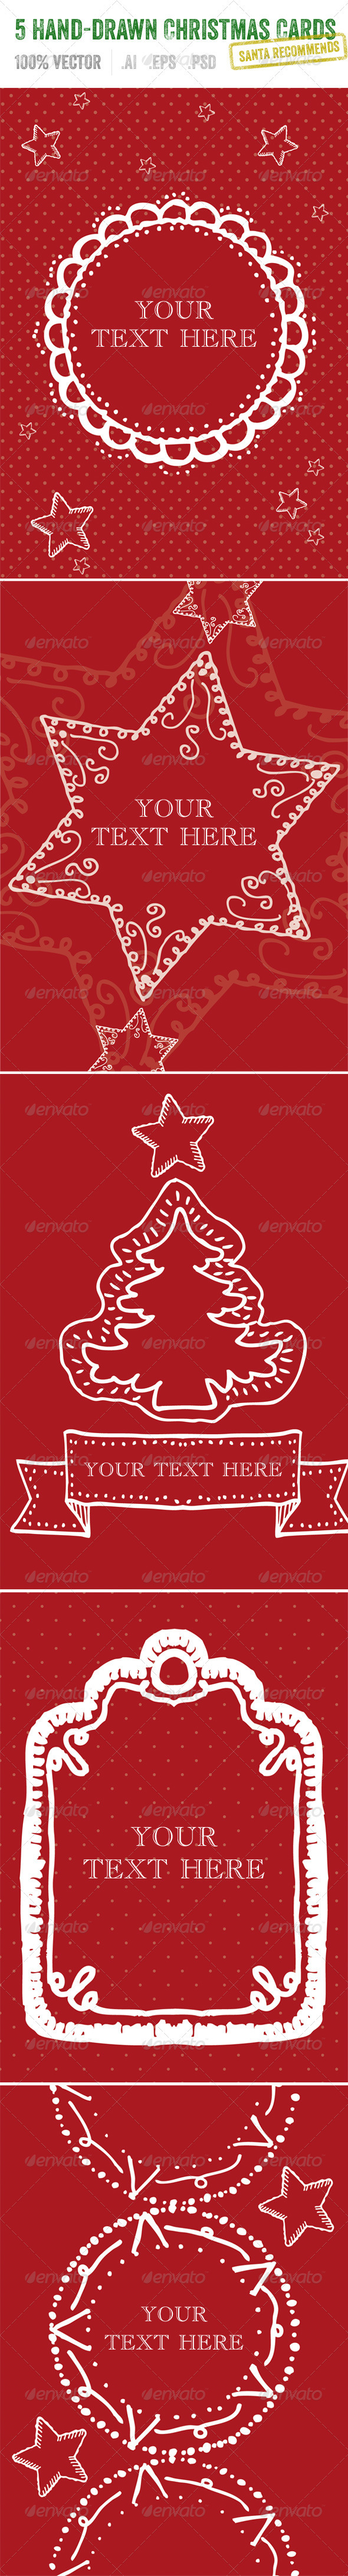 GraphicRiver 5 Hand-Drawn Christmas Cards 3417689